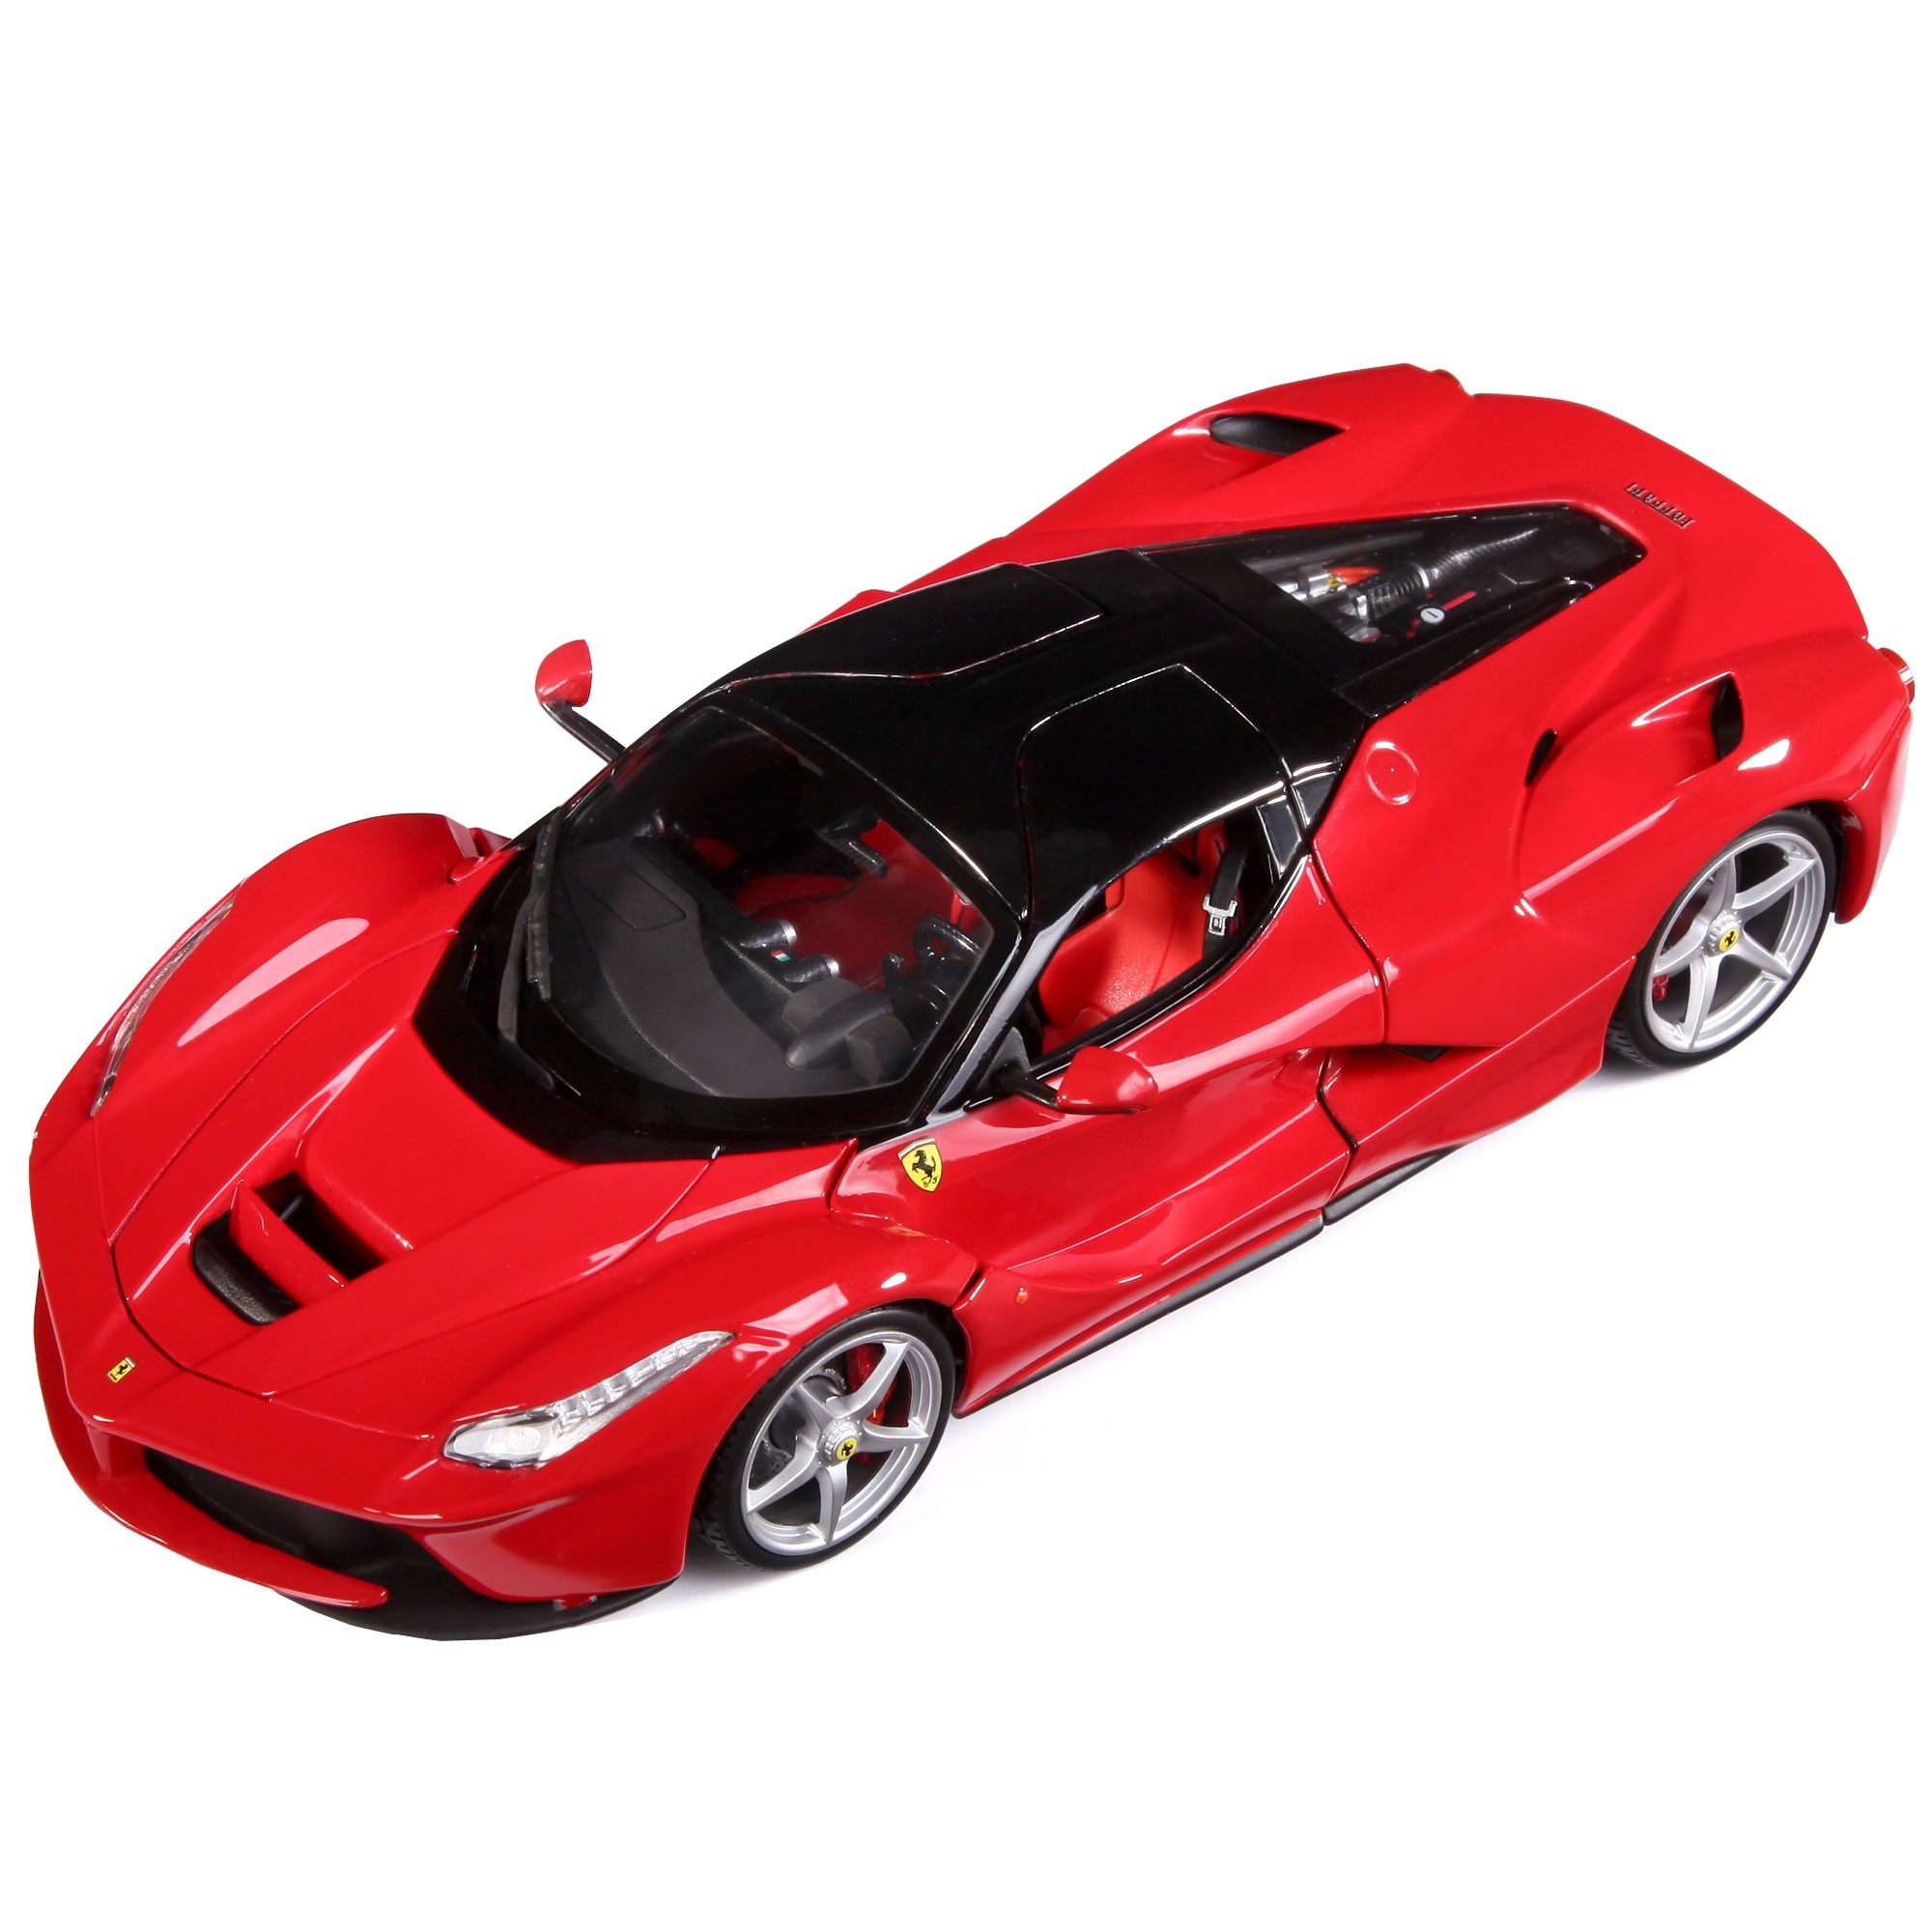 ferrari laferrari f70 red signature series by bburago 1. Black Bedroom Furniture Sets. Home Design Ideas